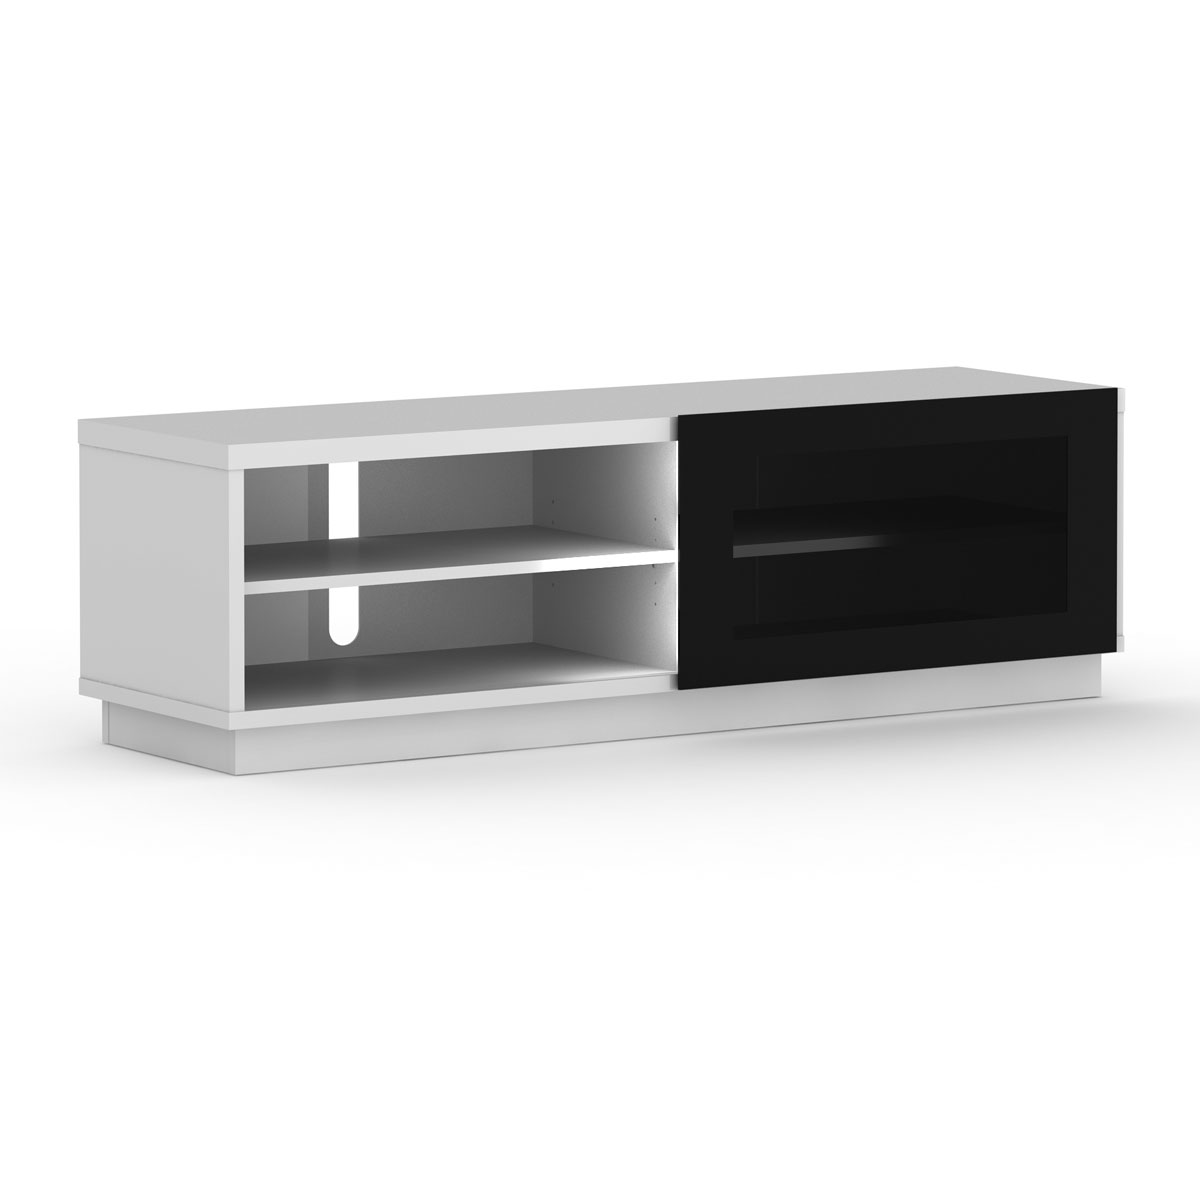 elmob harmony ha 160 04 blanc meuble tv elmob sur. Black Bedroom Furniture Sets. Home Design Ideas